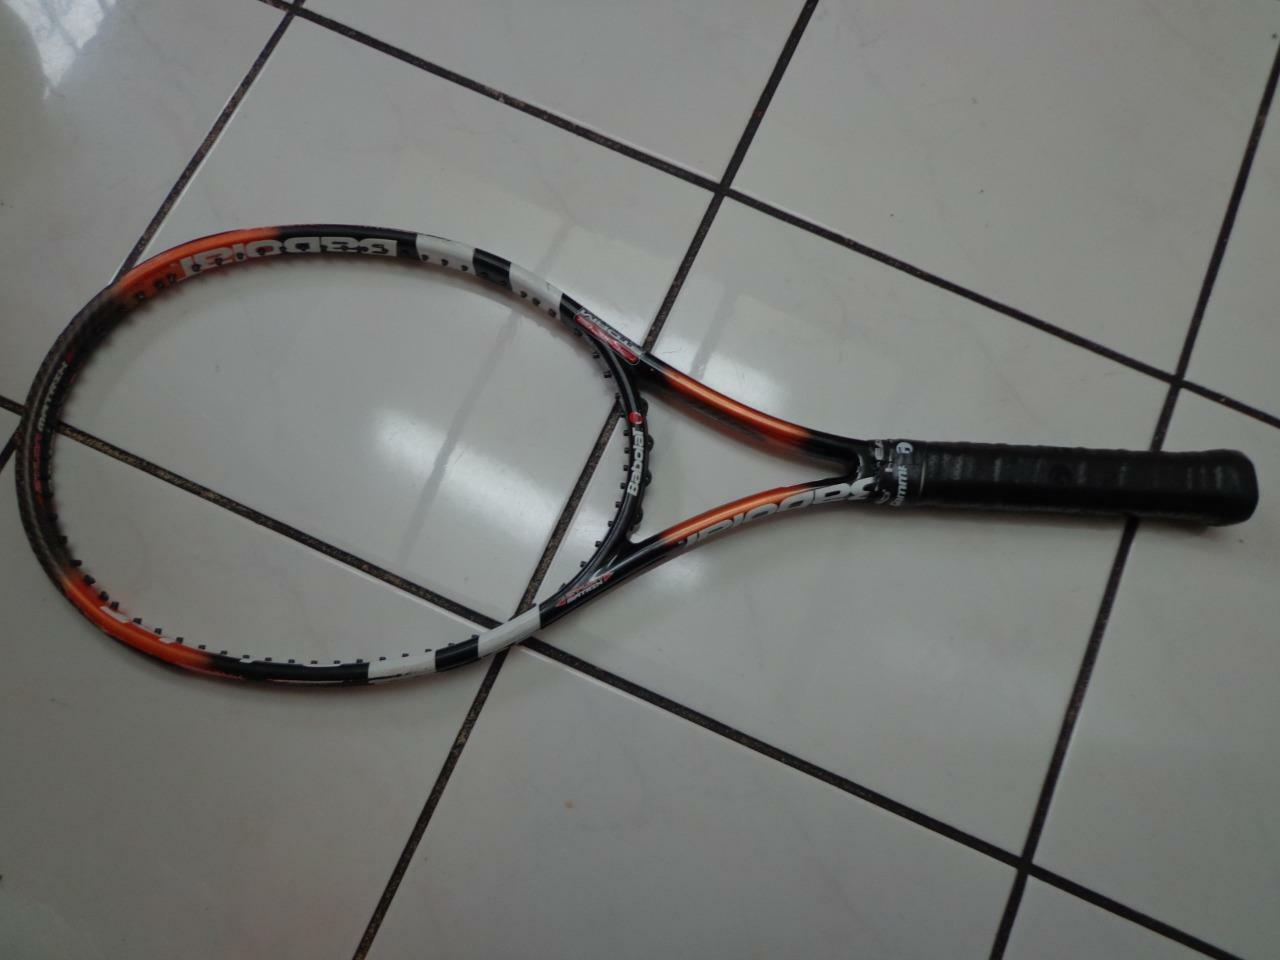 Babolat Pure Storm TEAM grip 98 head unstrung 4 1/2 grip TEAM Tennis Racquet d4cda2